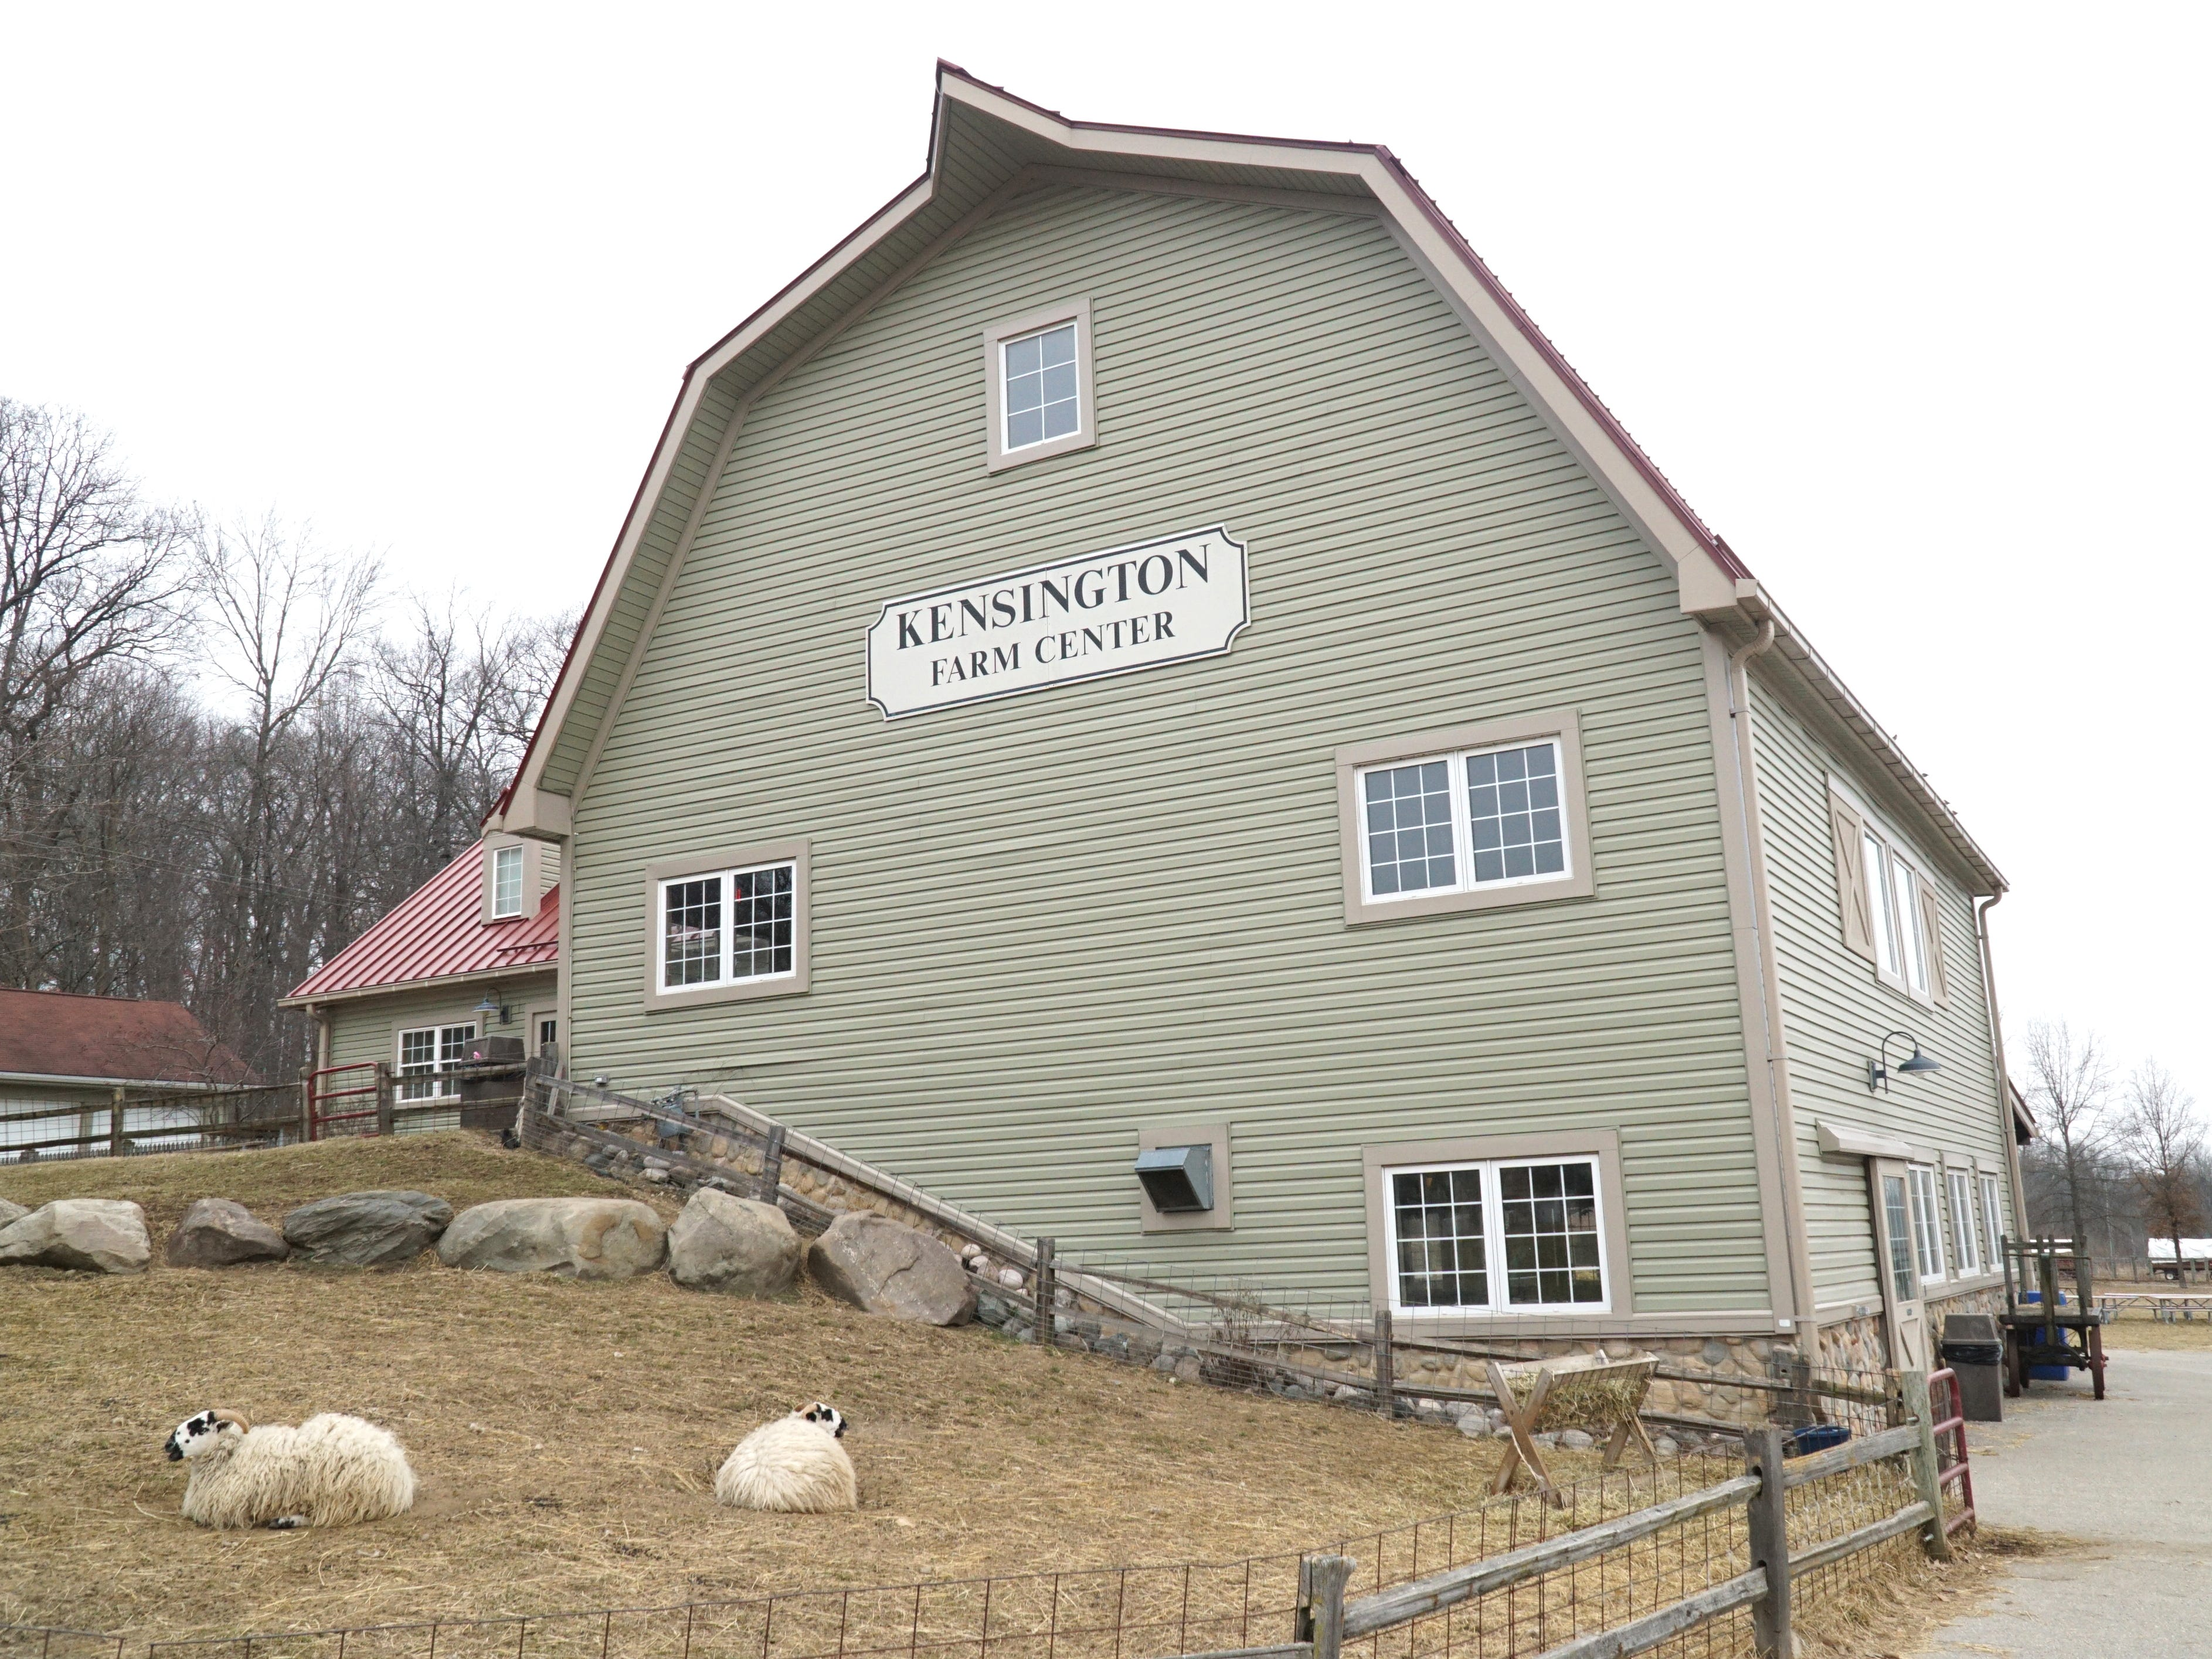 The Kensington Farm Center features a large barn in which many livestock animals are housed in cooler weather.